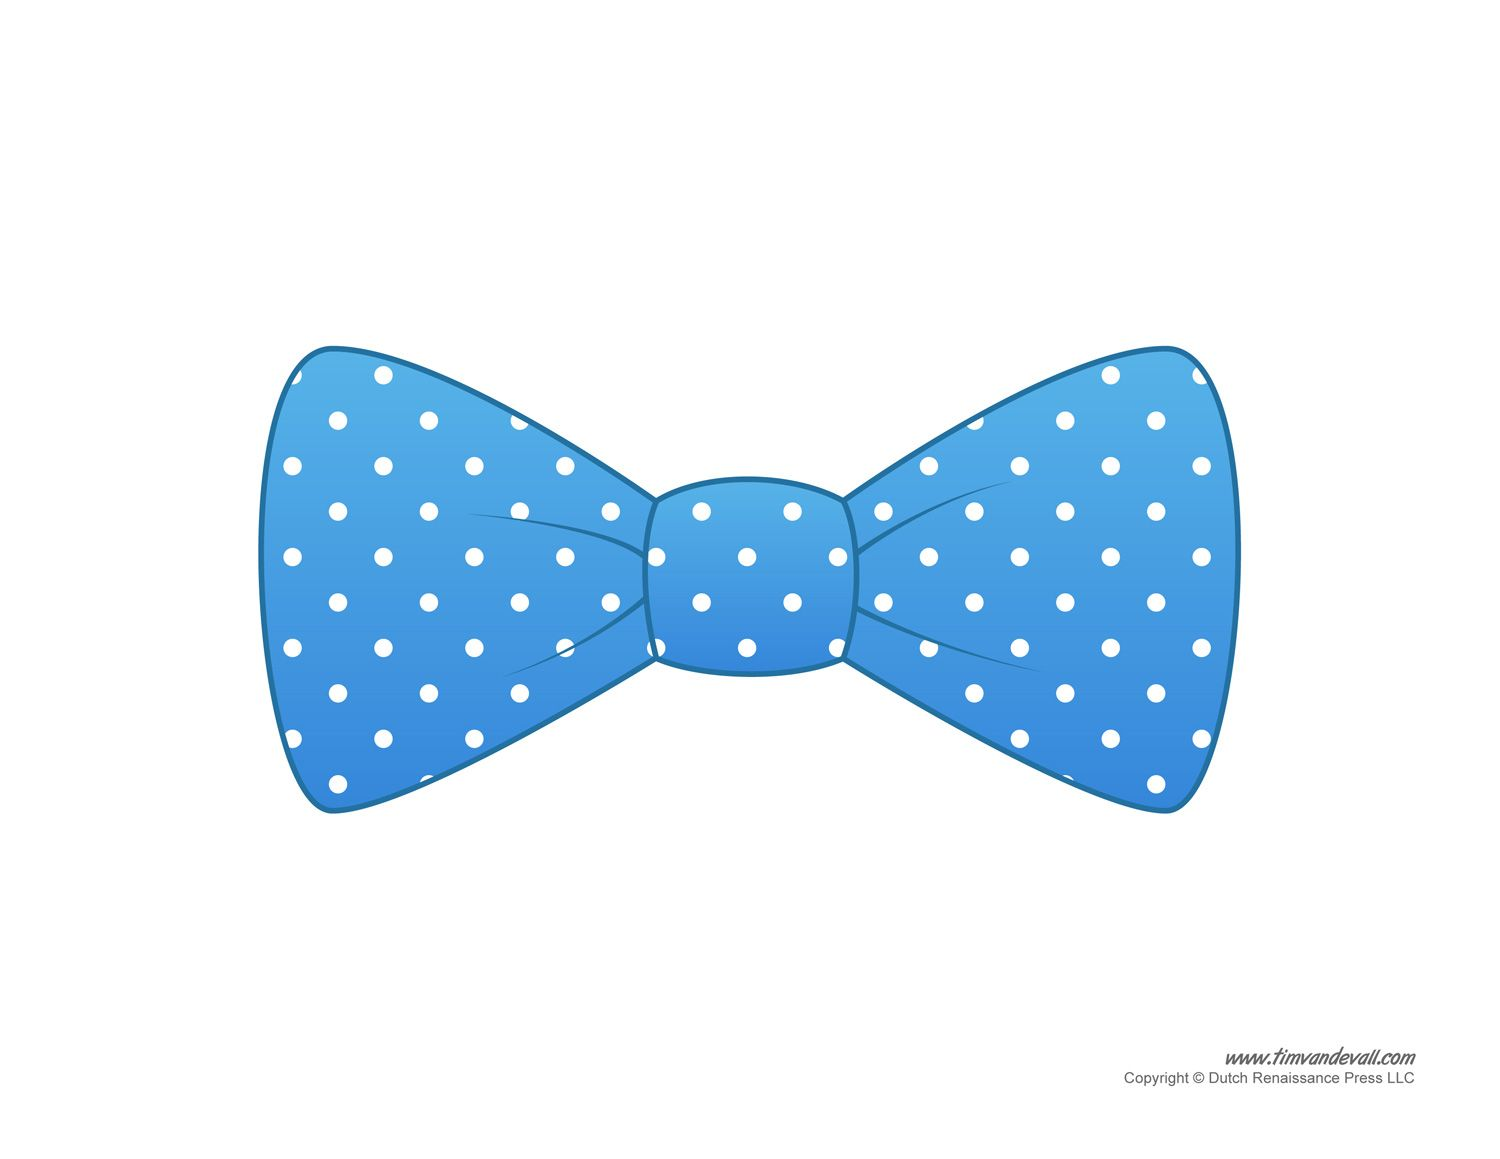 Kentucky derby hats and bowties clipart clipart free download bow tie clipart | Parties Holidays & Celebrations | Tie template ... clipart free download